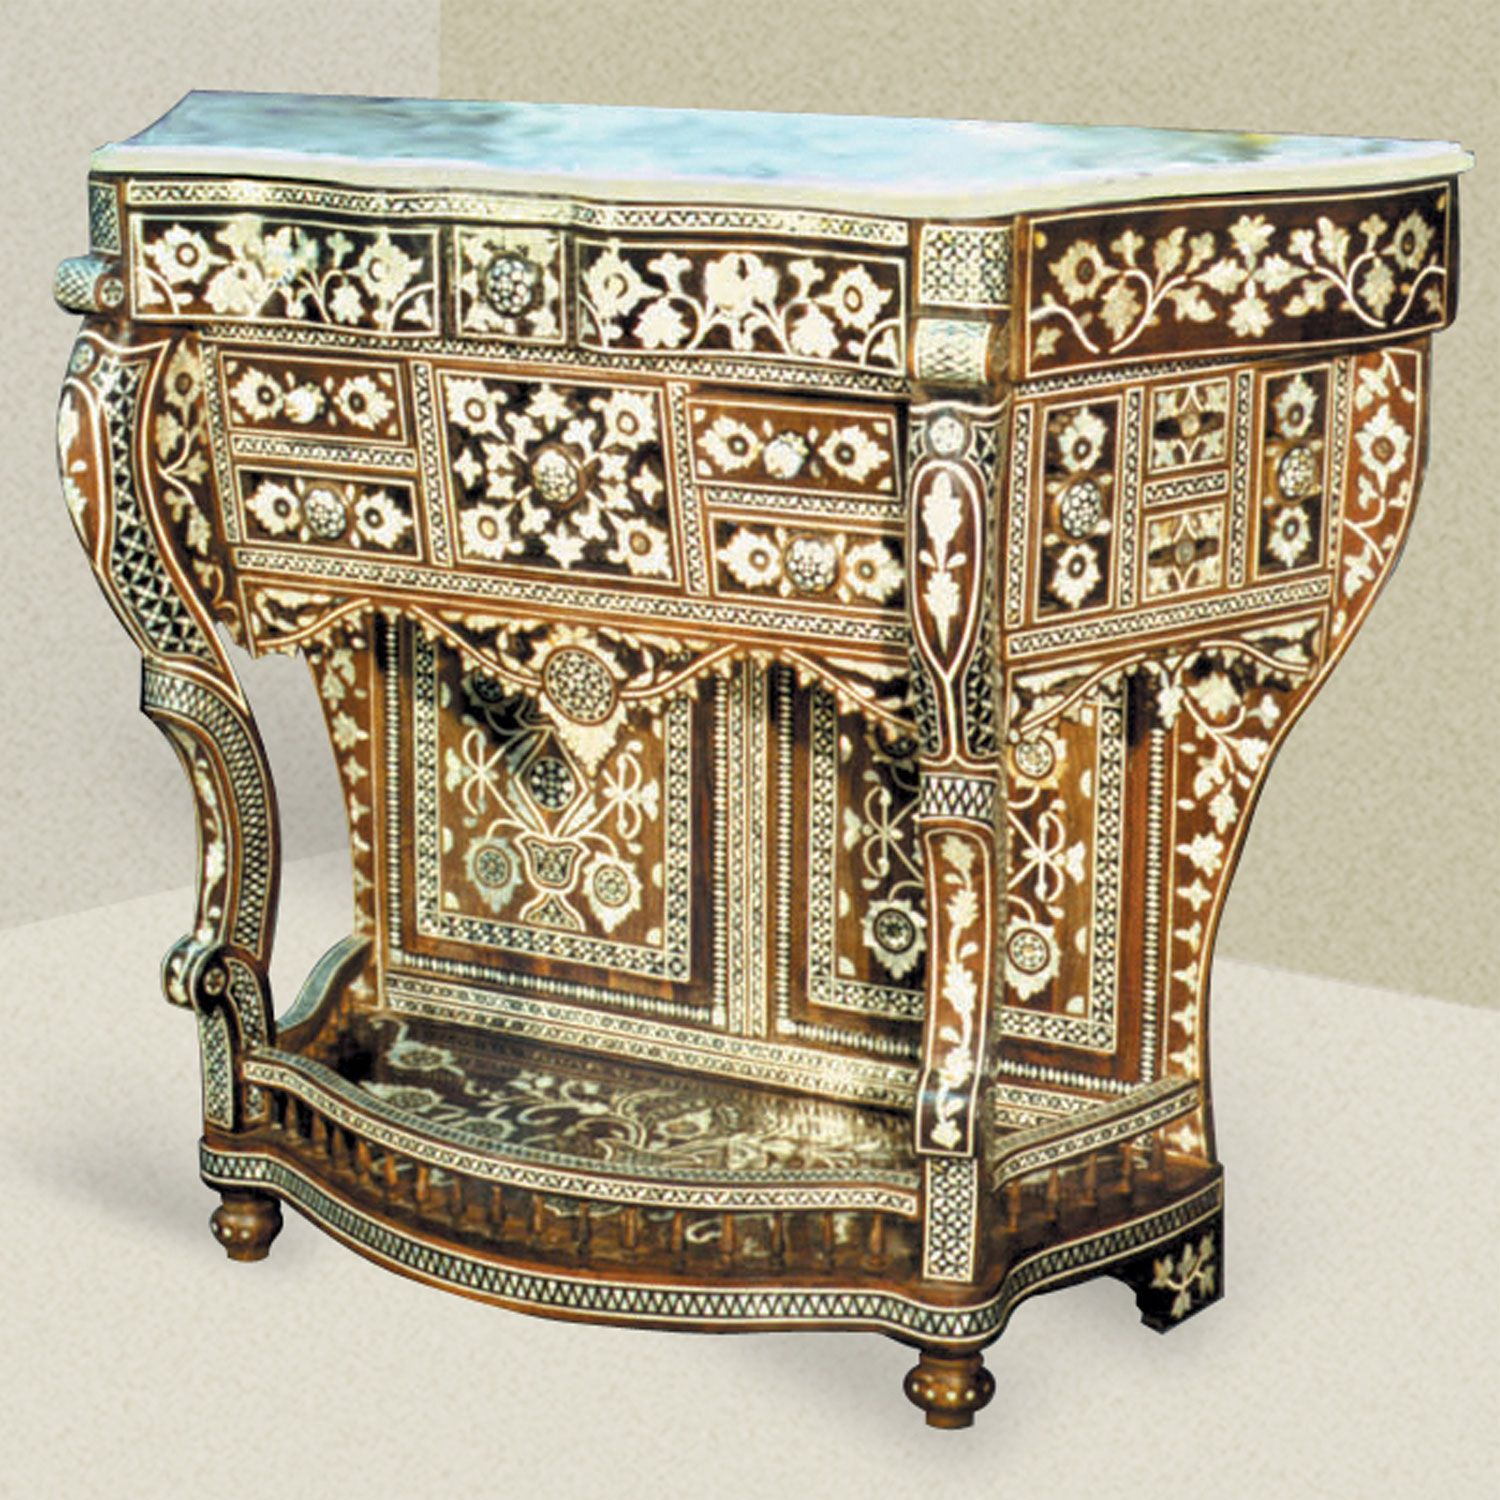 Wonderful Moroccan Style Console Table